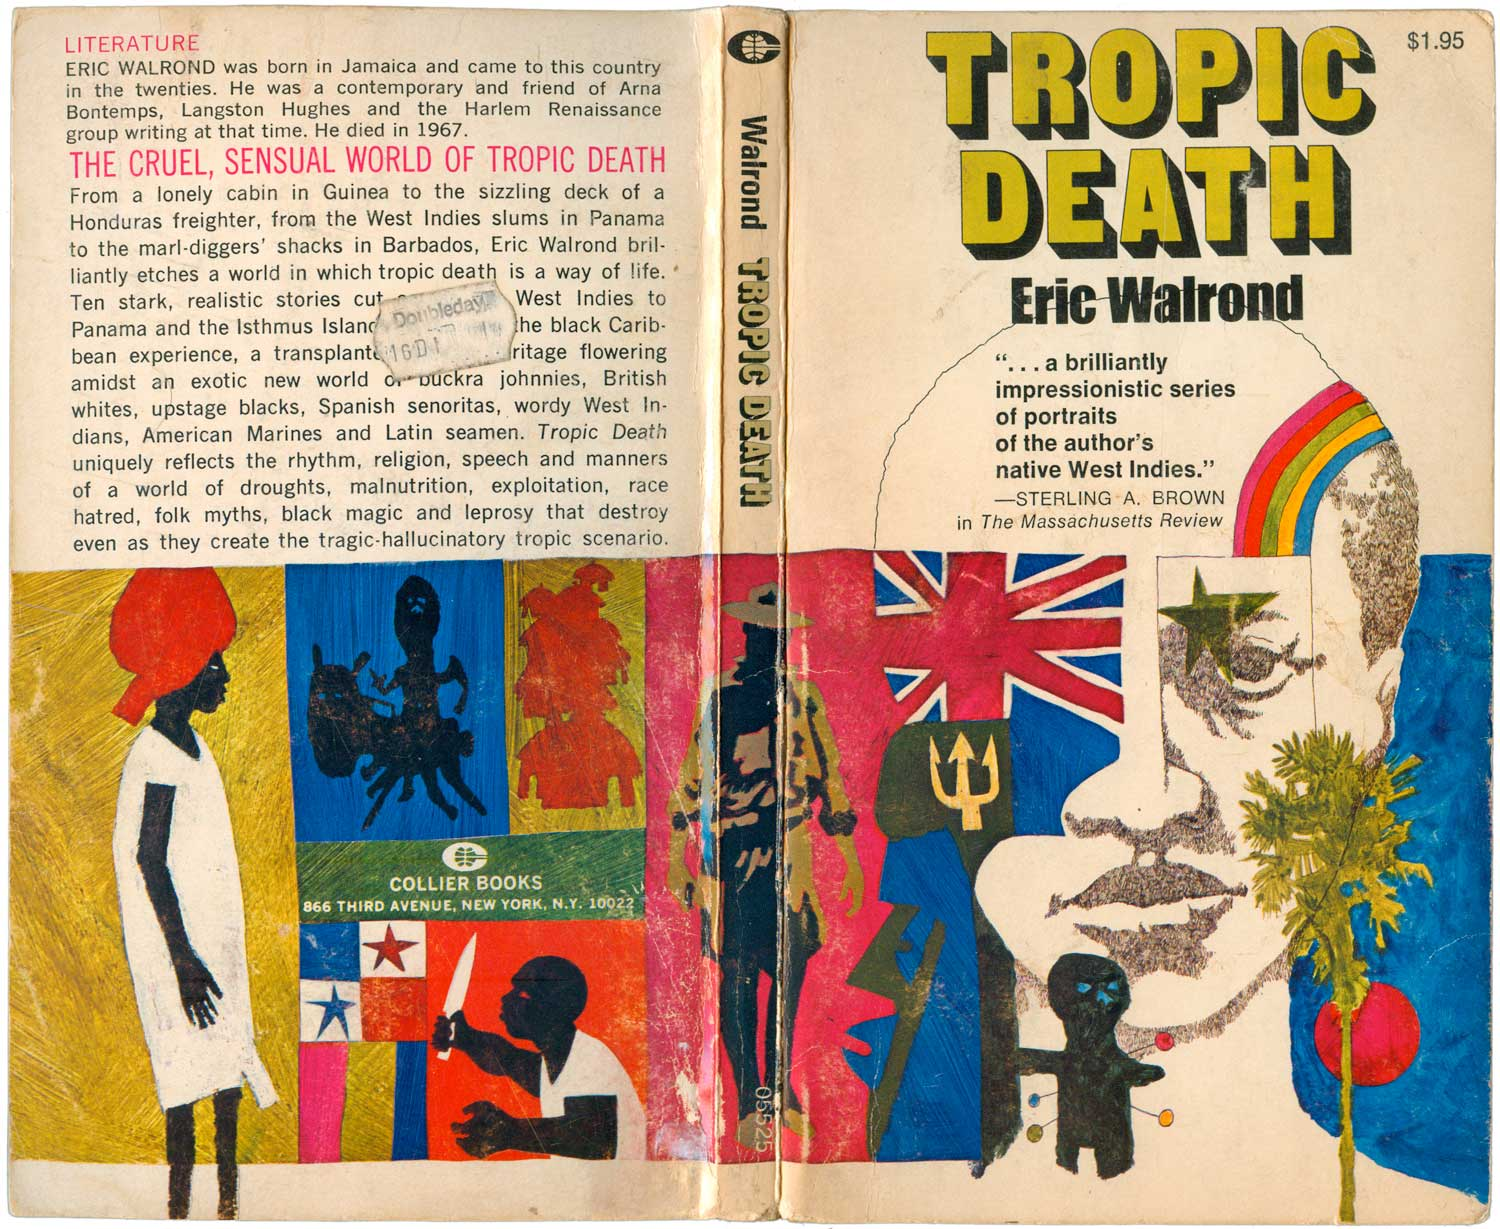 Walrod_TropicDeath_Collier1500